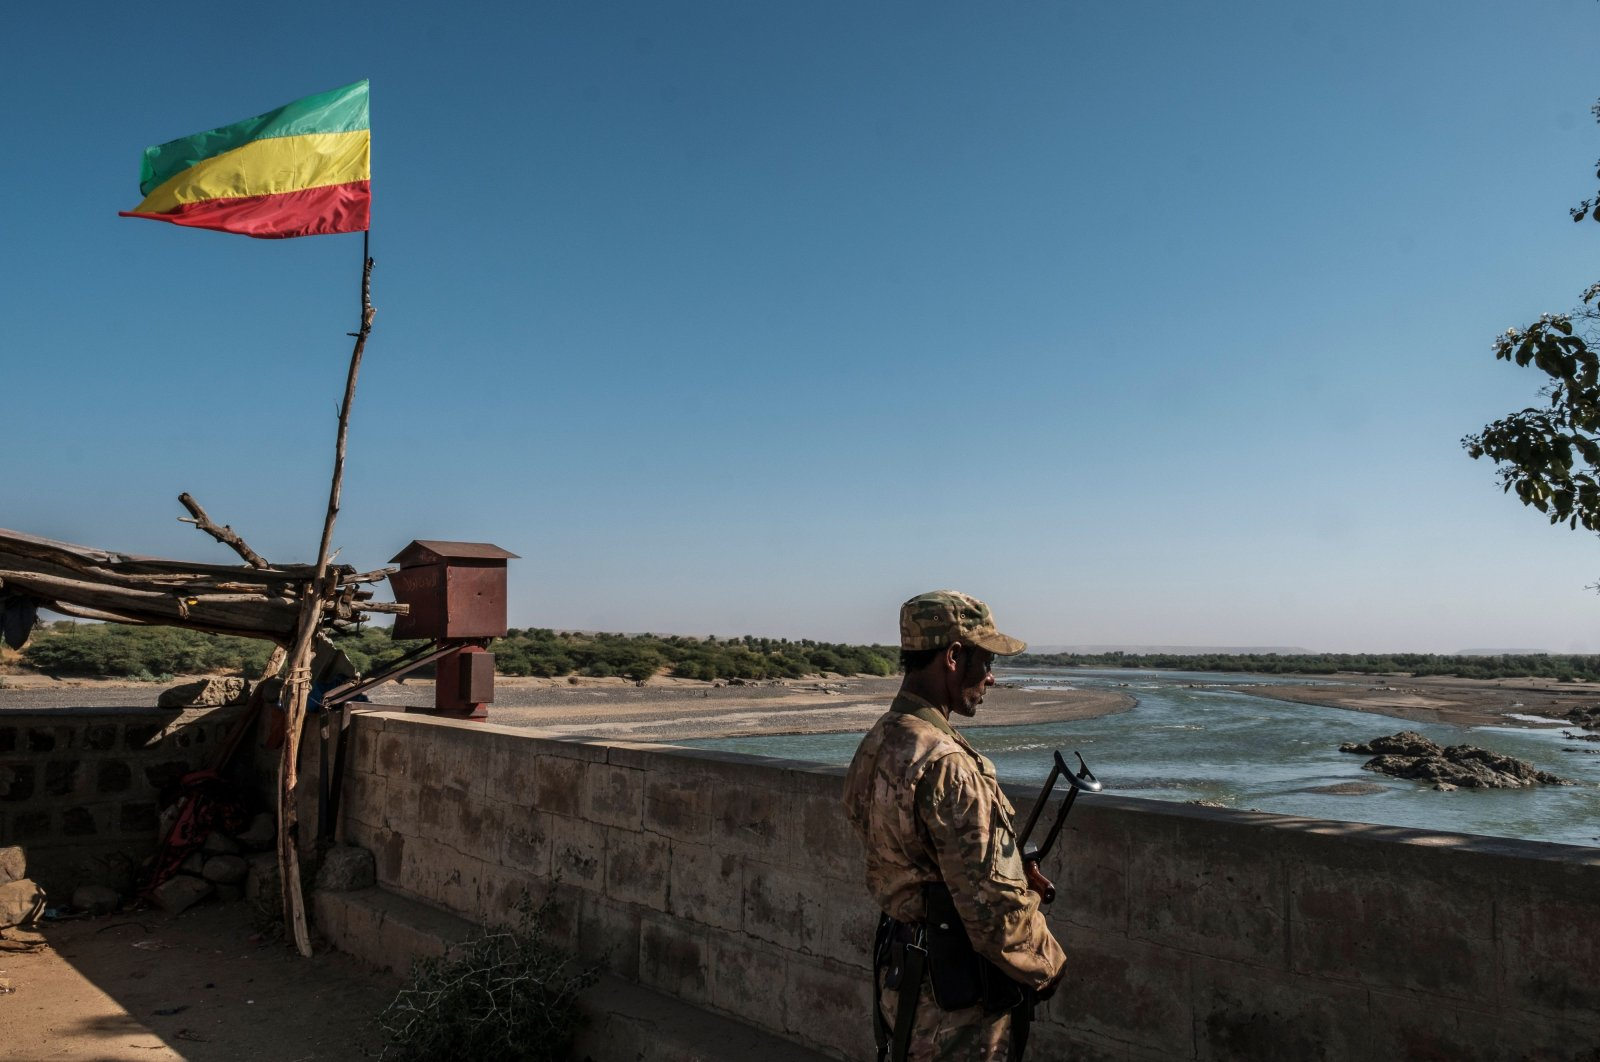 A member of the Amhara Special Forces watches on at the border crossing with Eritrea where an Imperial Ethiopian flag waves, in Humera, Ethiopia, on Nov. 22, 2020. (AFP)